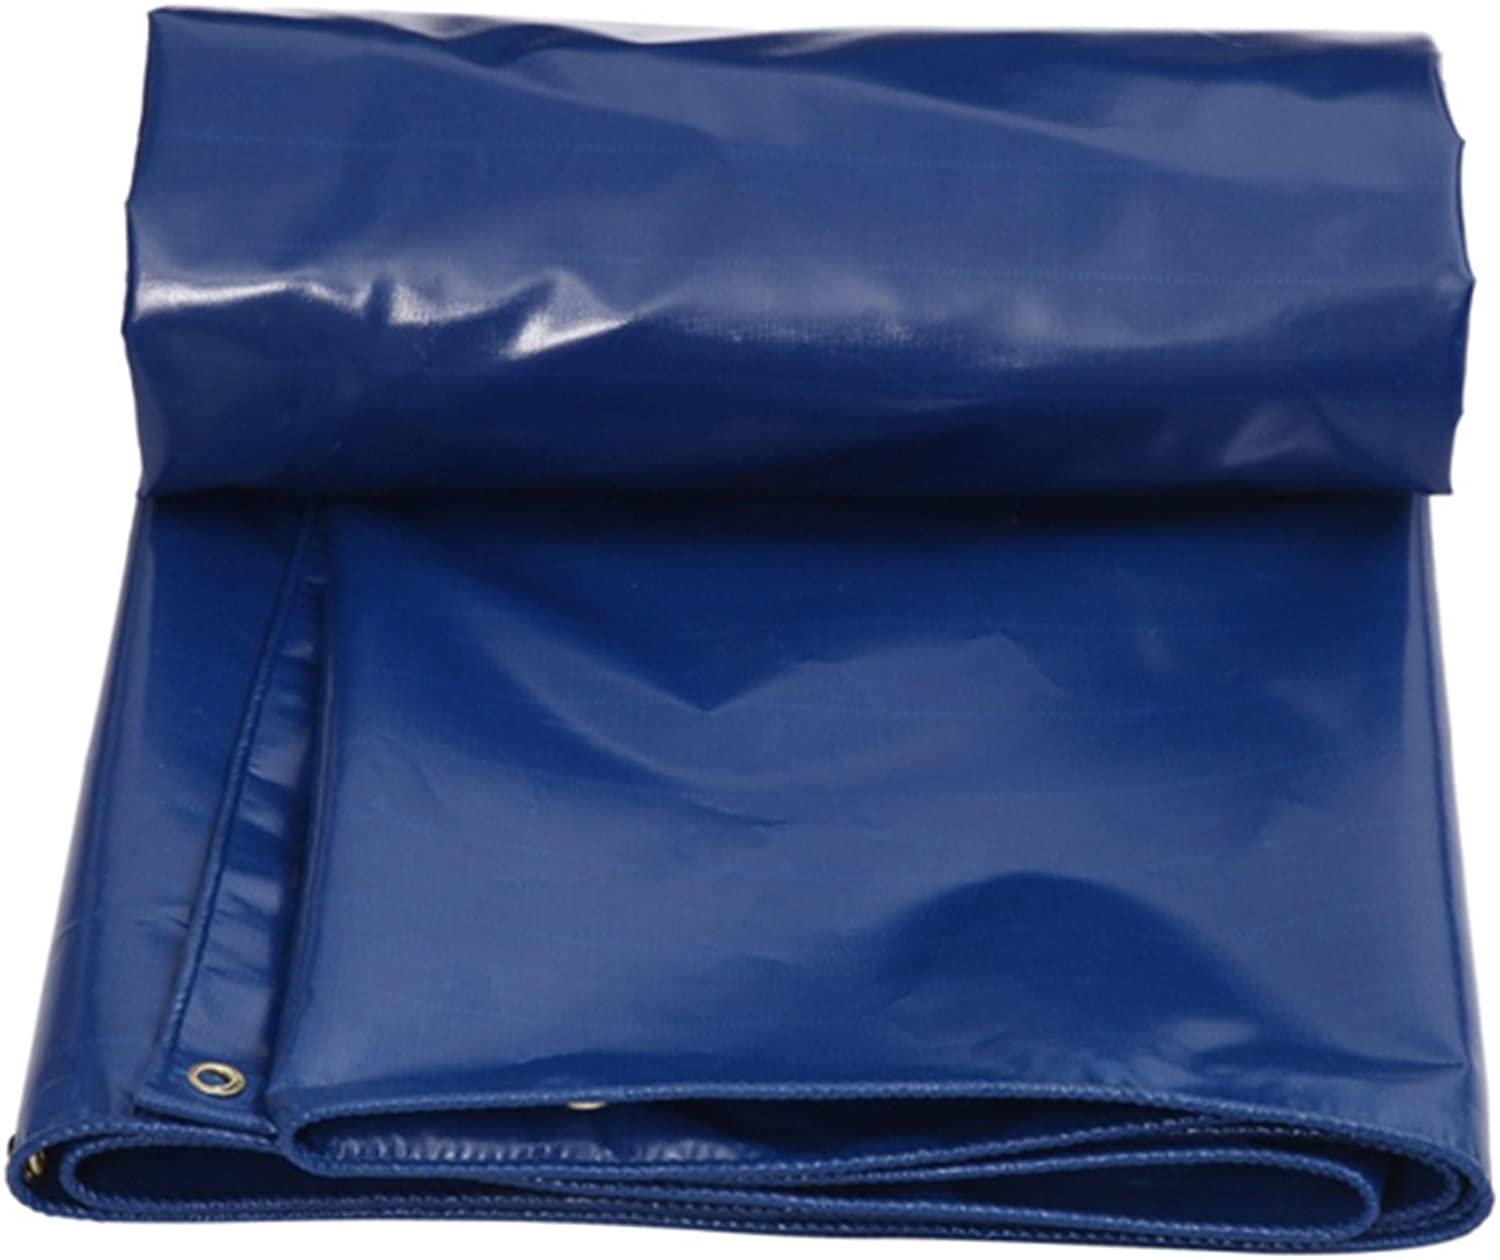 CHAOXIANG Tarpaulin Waterproof Heavy Duty Tent Thicken Foldable Antiseptic Sunscreen Covering The Rain Linoleum PVC, 550G m2, 12 Size (color   blueee, Size   3x4M)